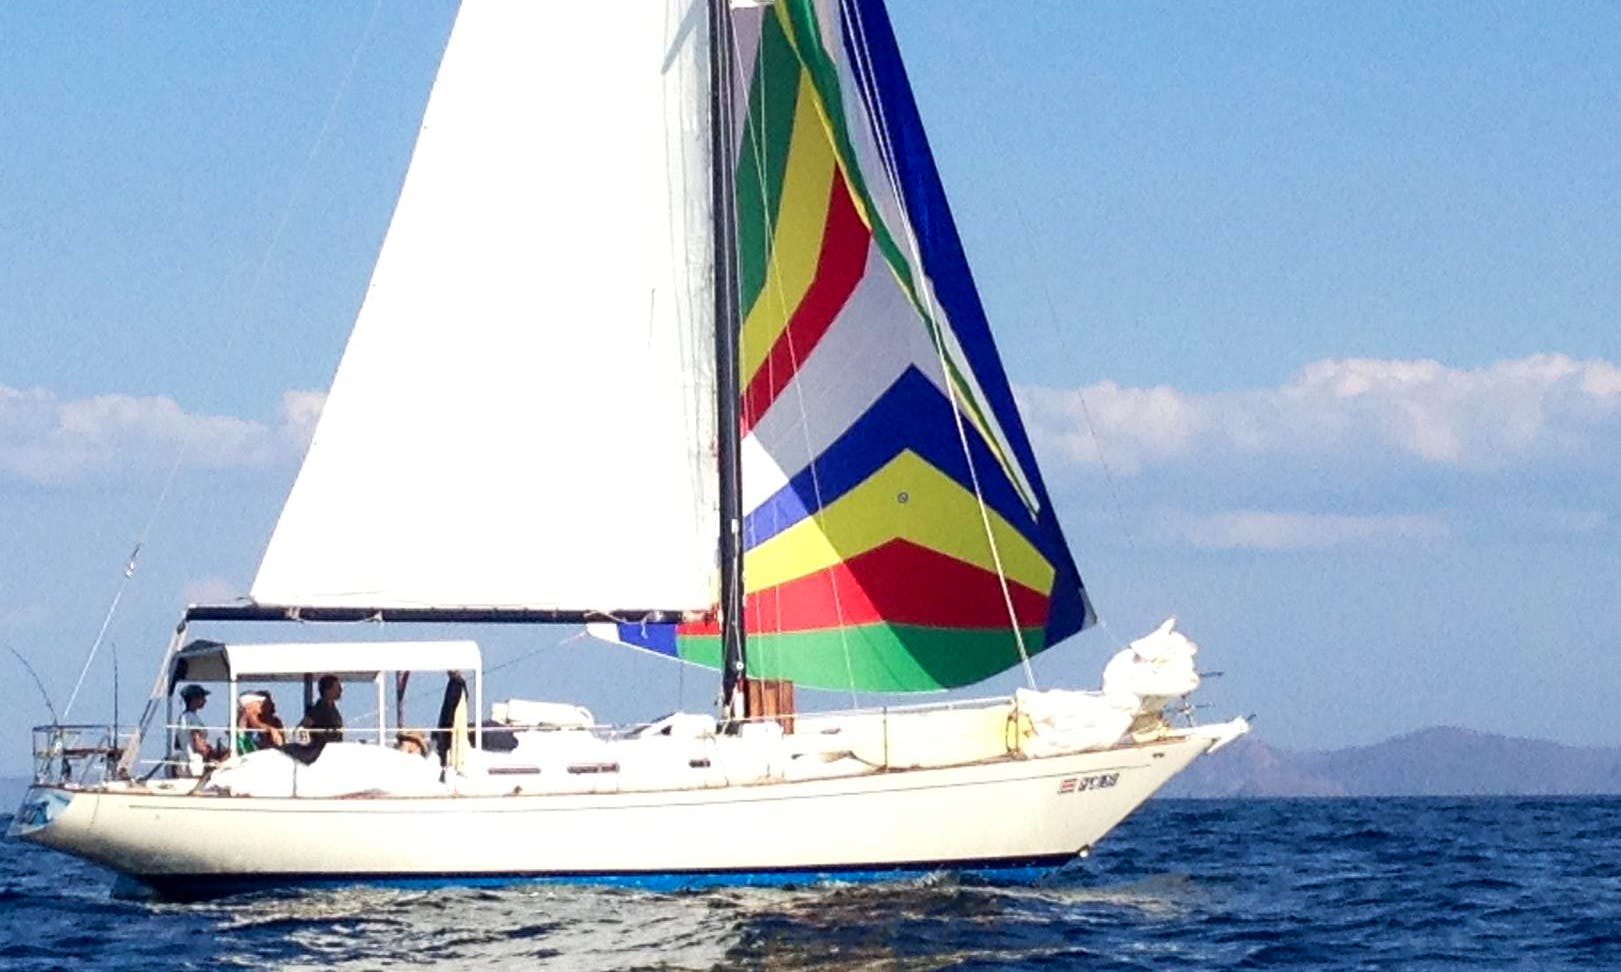 Sailing Tours and Sightseeing in Guanacaste Province, Costa Rica